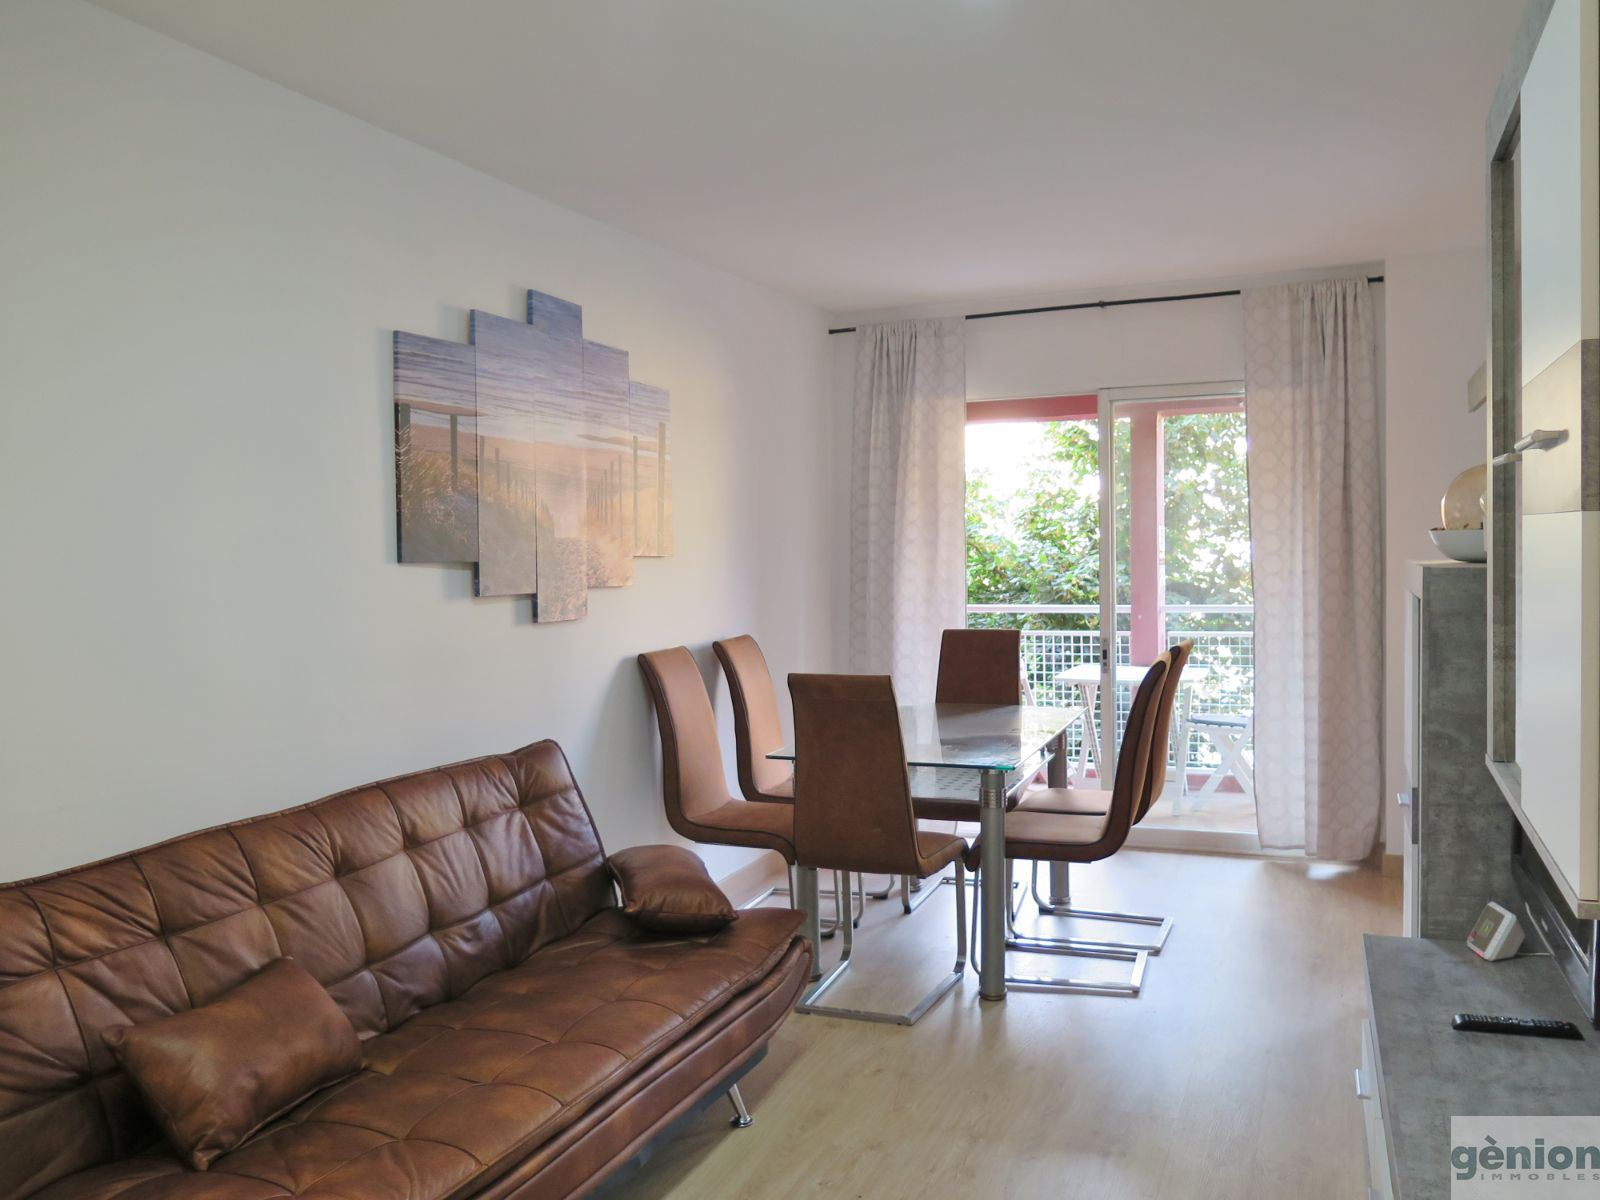 APARTMENT WITH 3 DOUBLE BEDROOMS AND 2 OPTIONAL PARKING SPACES, IN GIRONA'S BARRI VELL (OLD QUARTER)